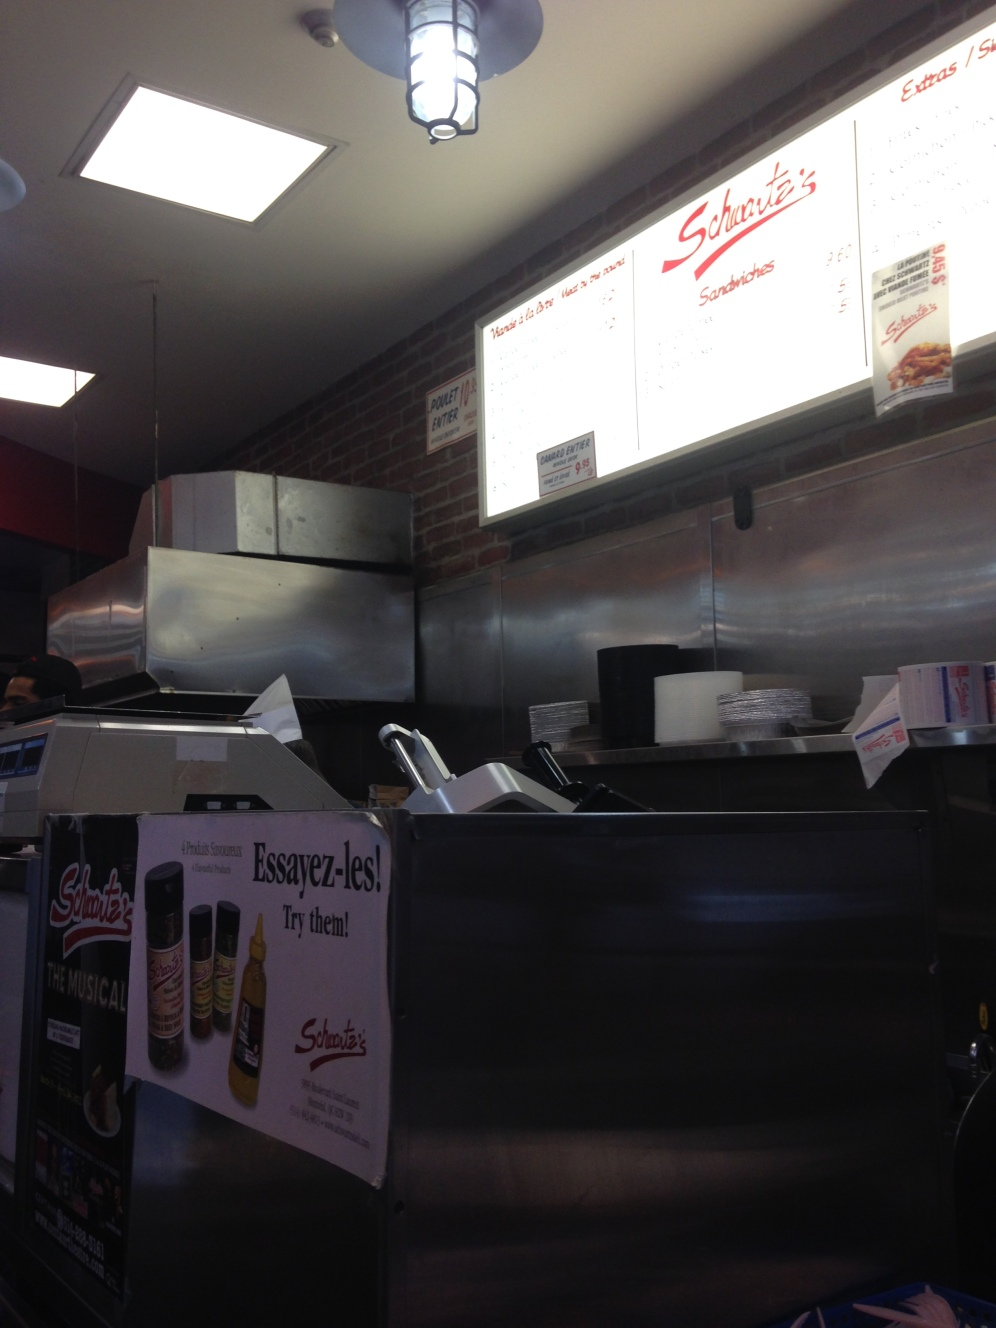 The takeout counter